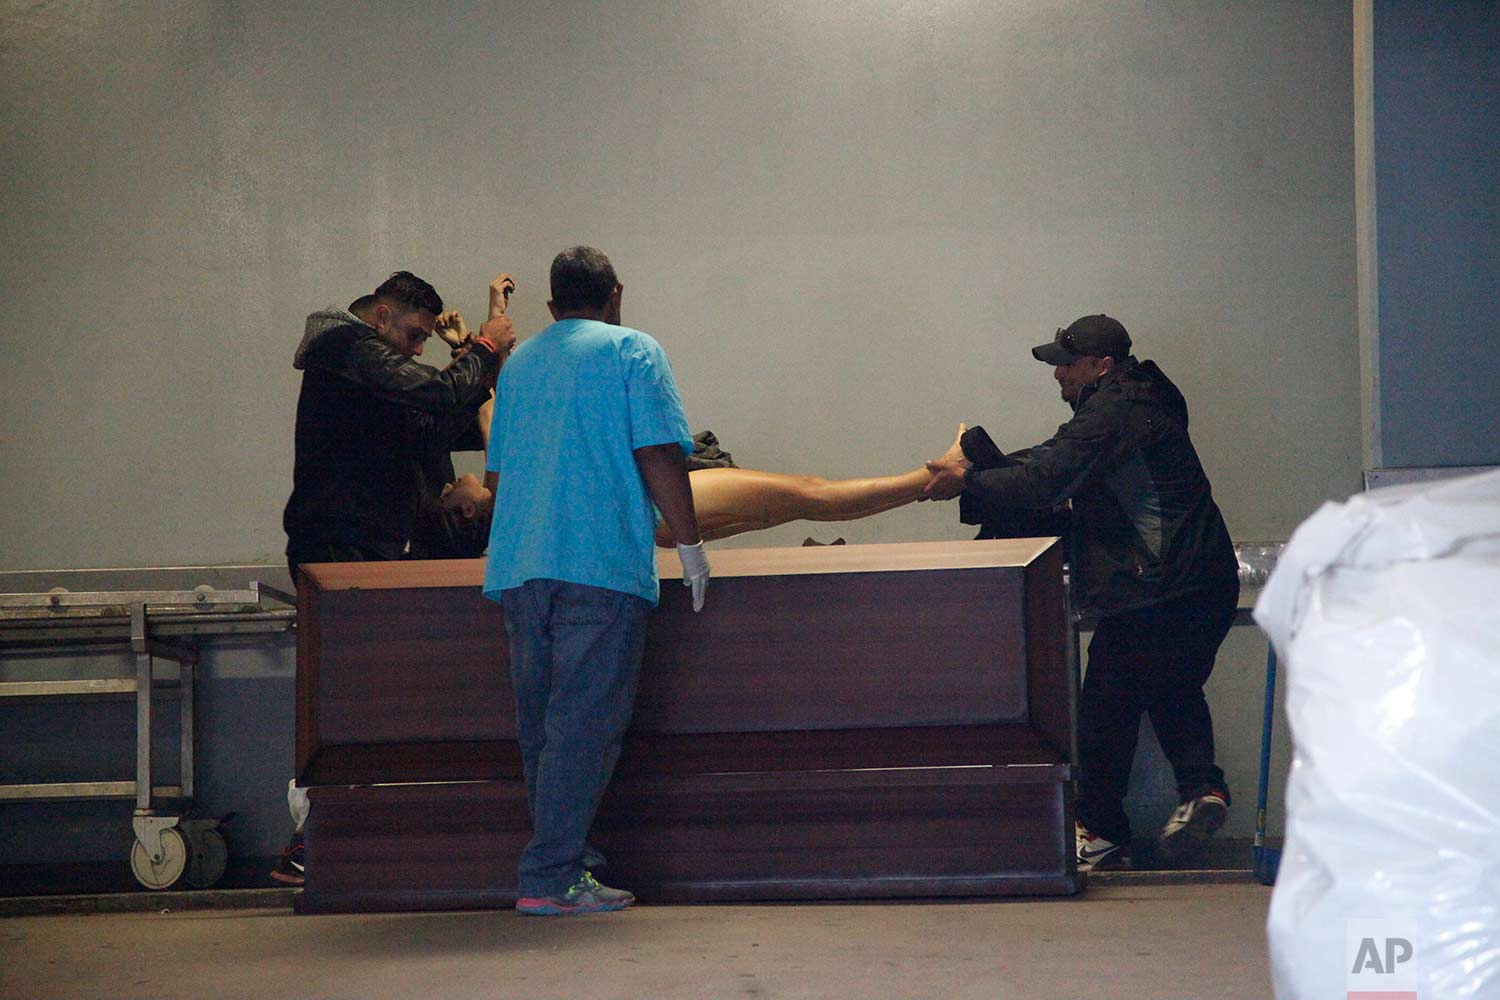 Relatives place the body of Kimberly Dayana Fonseca, 19, in a coffin at a morgue in Tegucigalpa, Honduras, Saturday, Dec. 2, 2017. (AP Photo/Fernando Antonio)